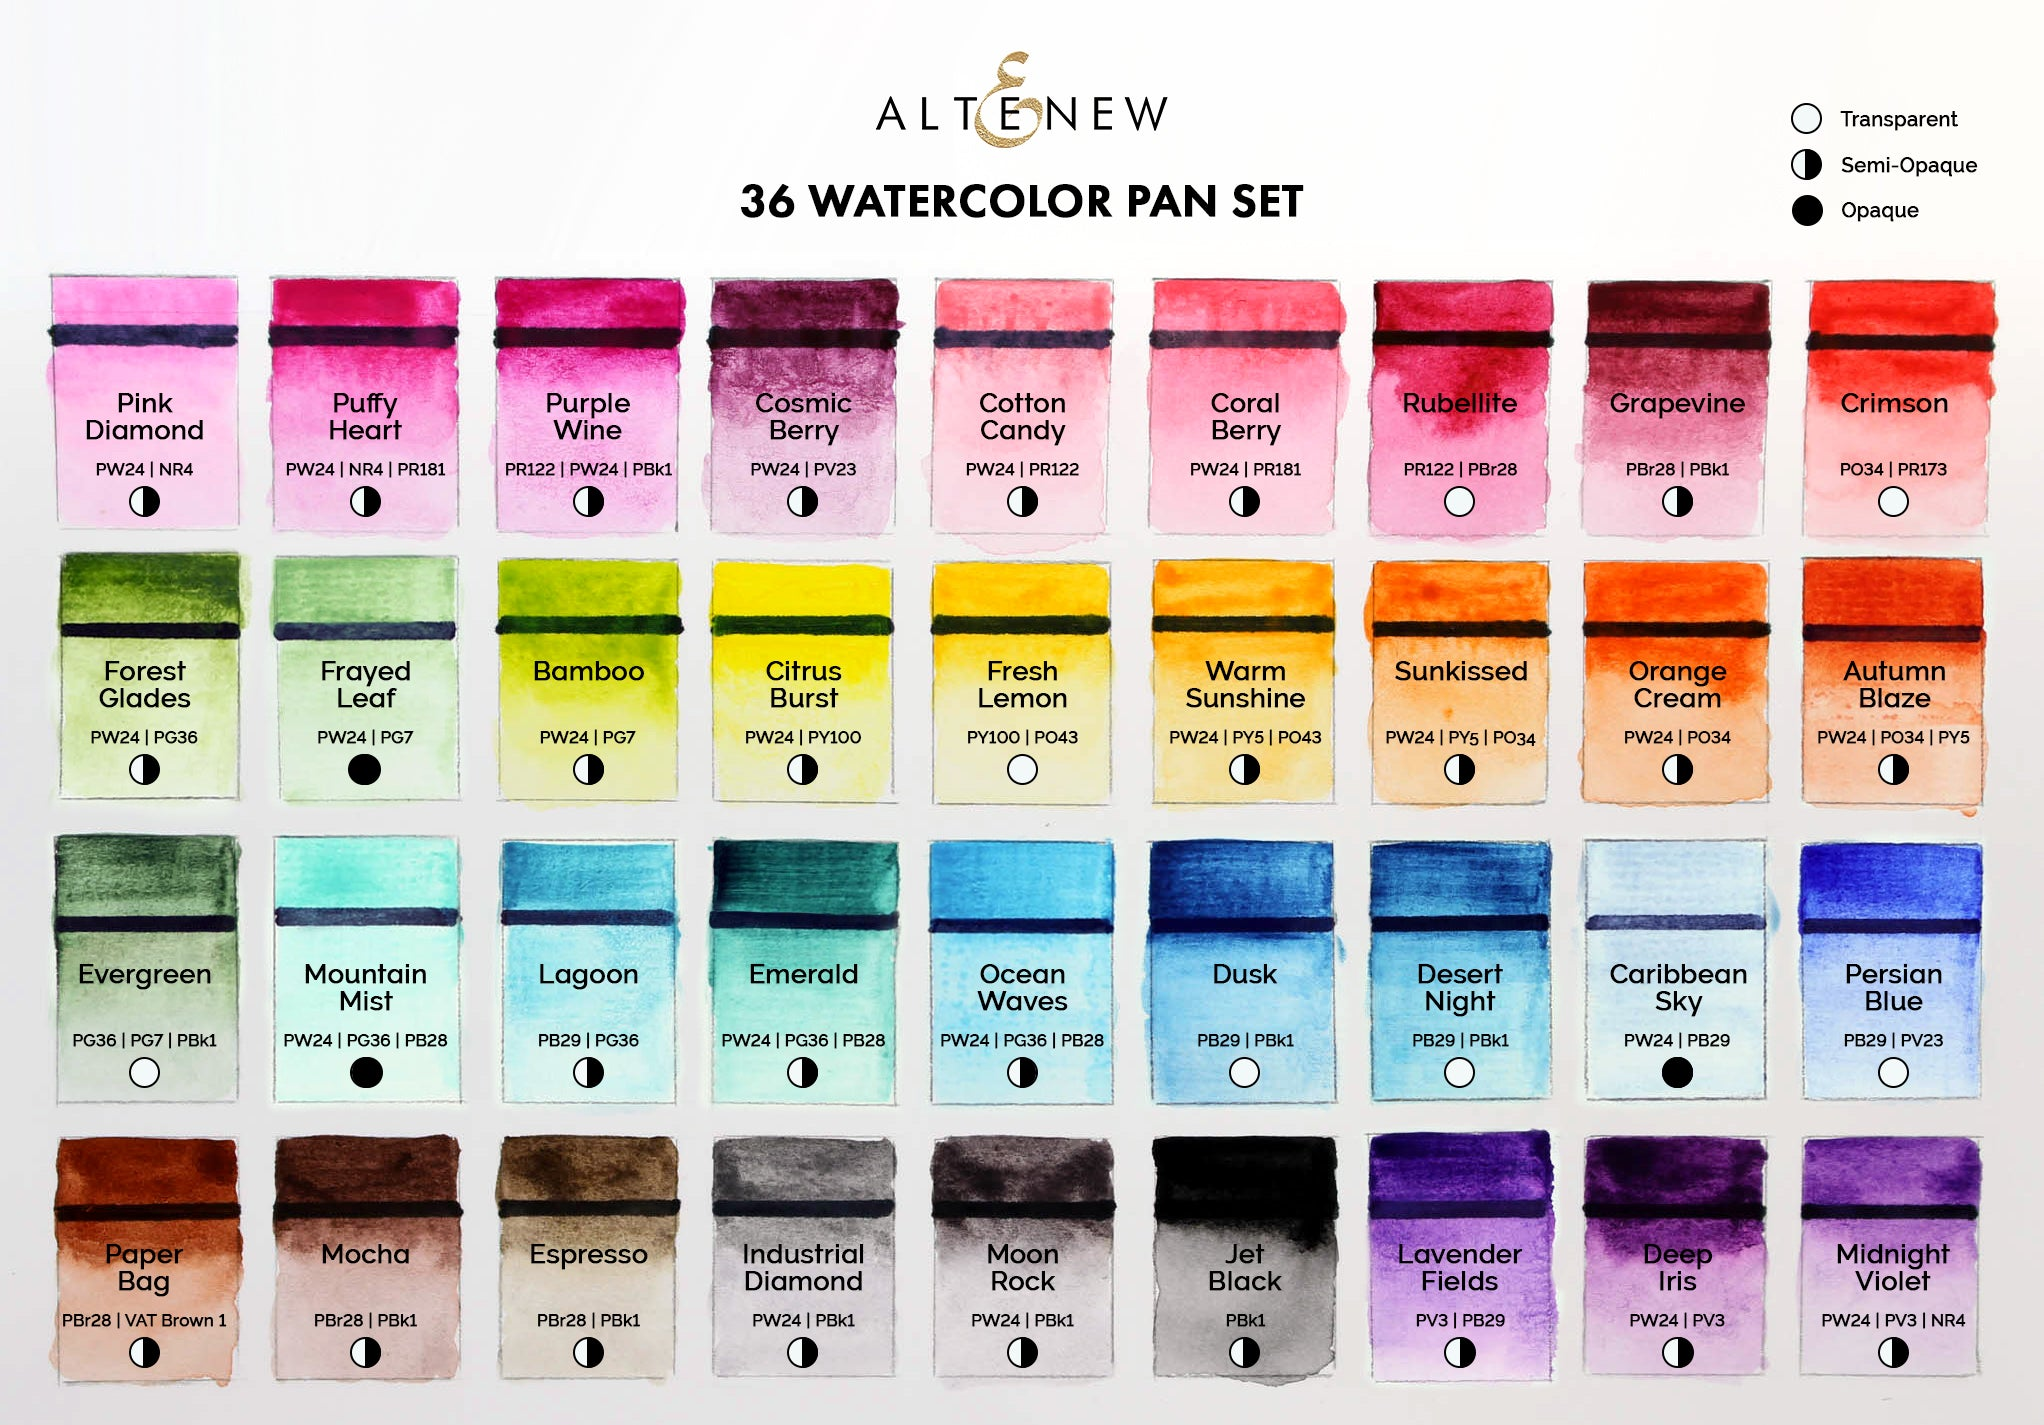 altenew watercolor 36 pan set transparency chart color version